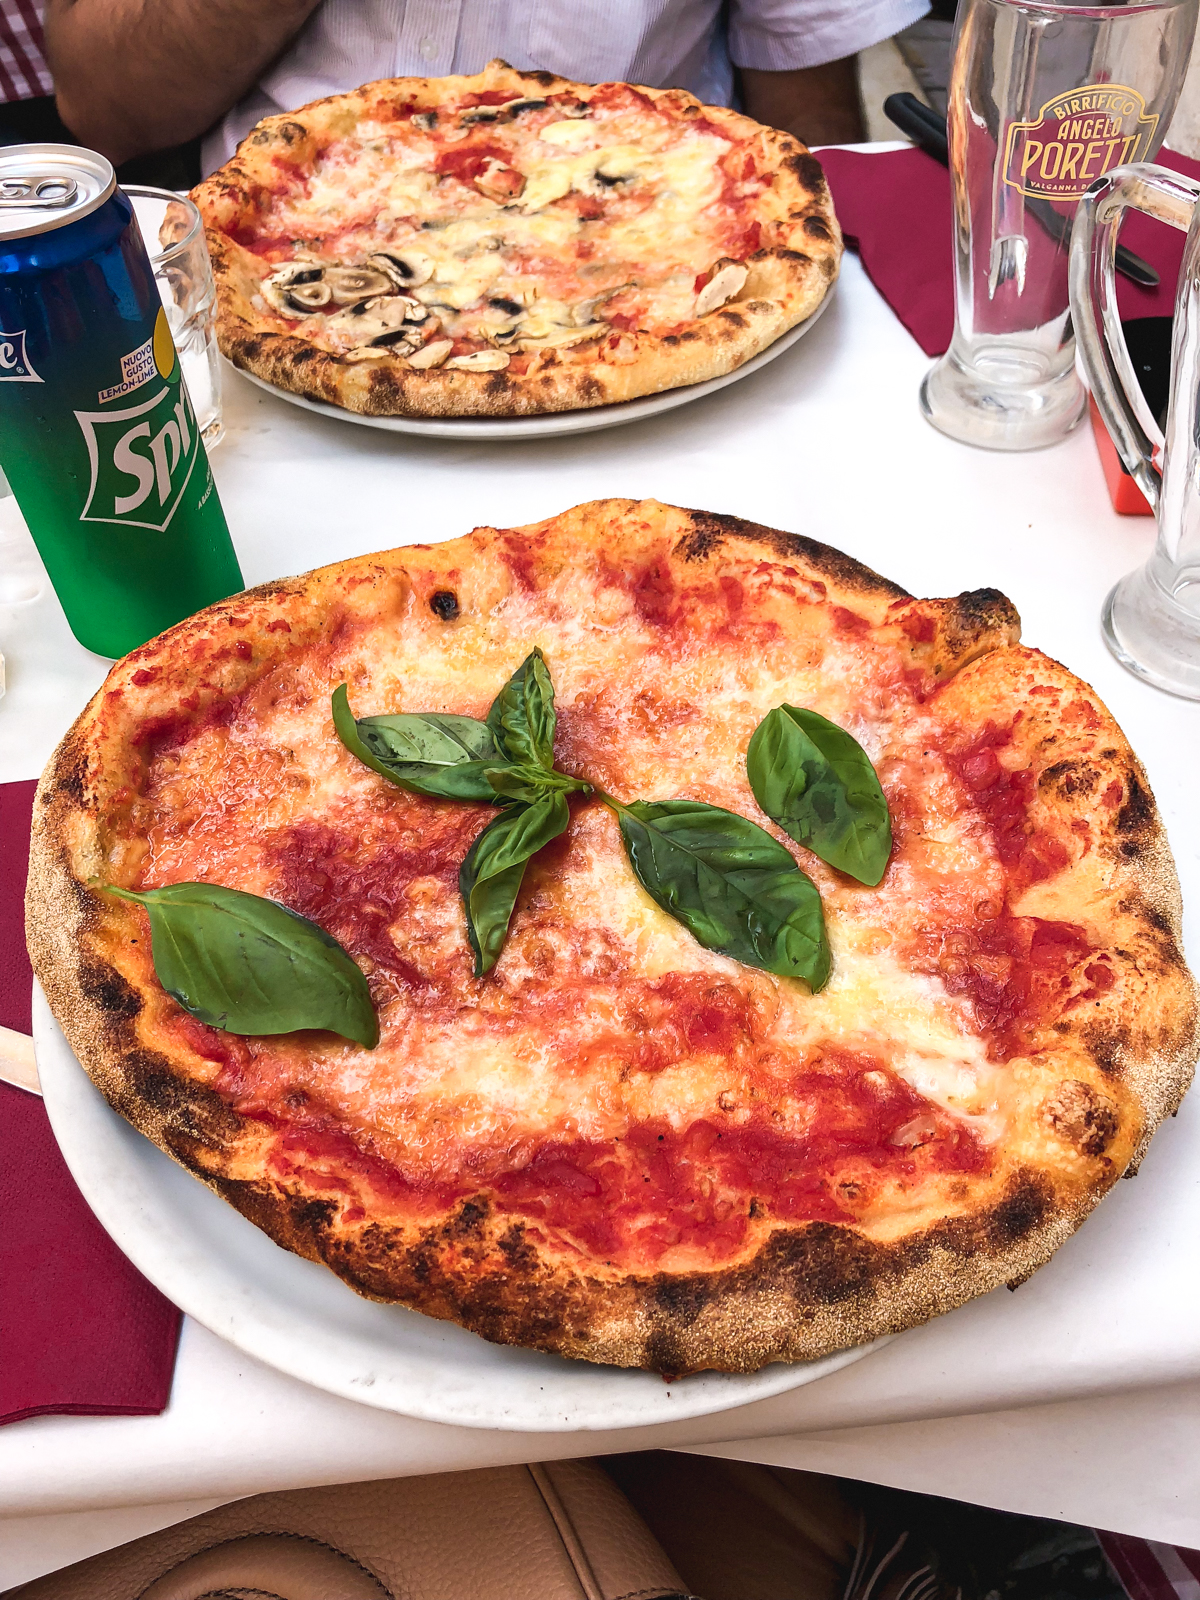 margherita pizza and fungi pizza from Dar Poeta